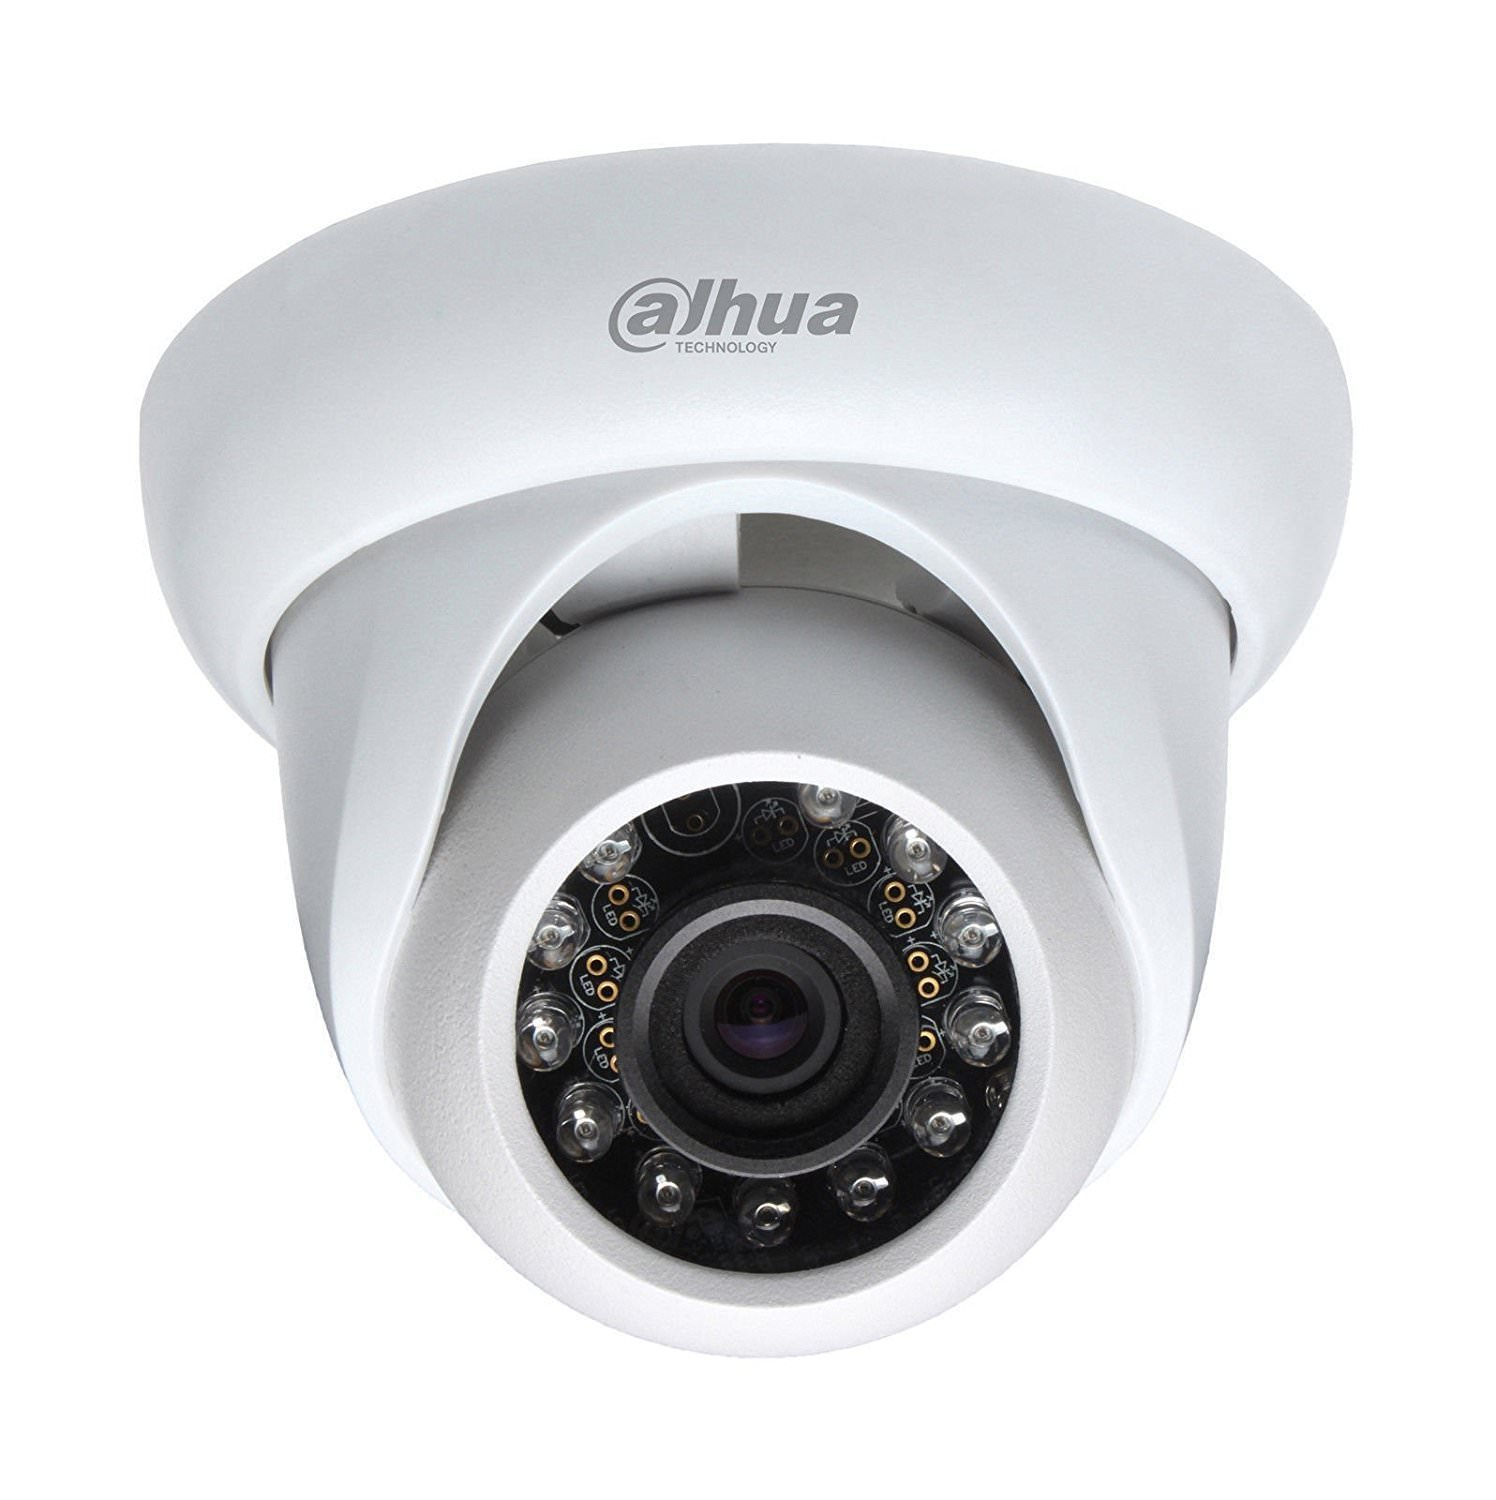 Dahua DH-HAC-HDW1200SP-0360 HD Dome 2MP 1080P Indoor Camera